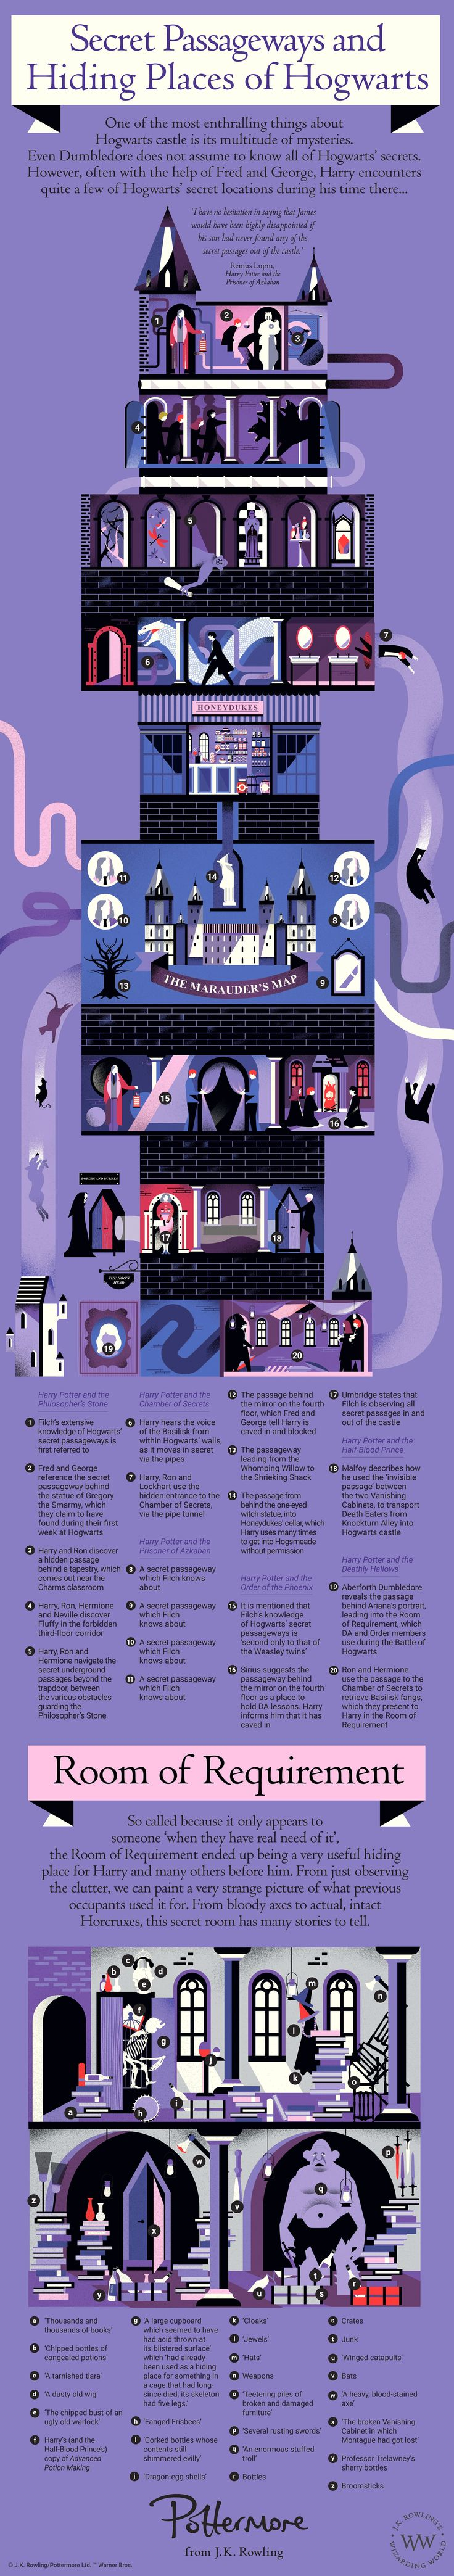 PM_Secret_Passageways_Infographic.jpg (2600×14753) All rights: J.K. Rowling, Pottermore, Warner Bros.